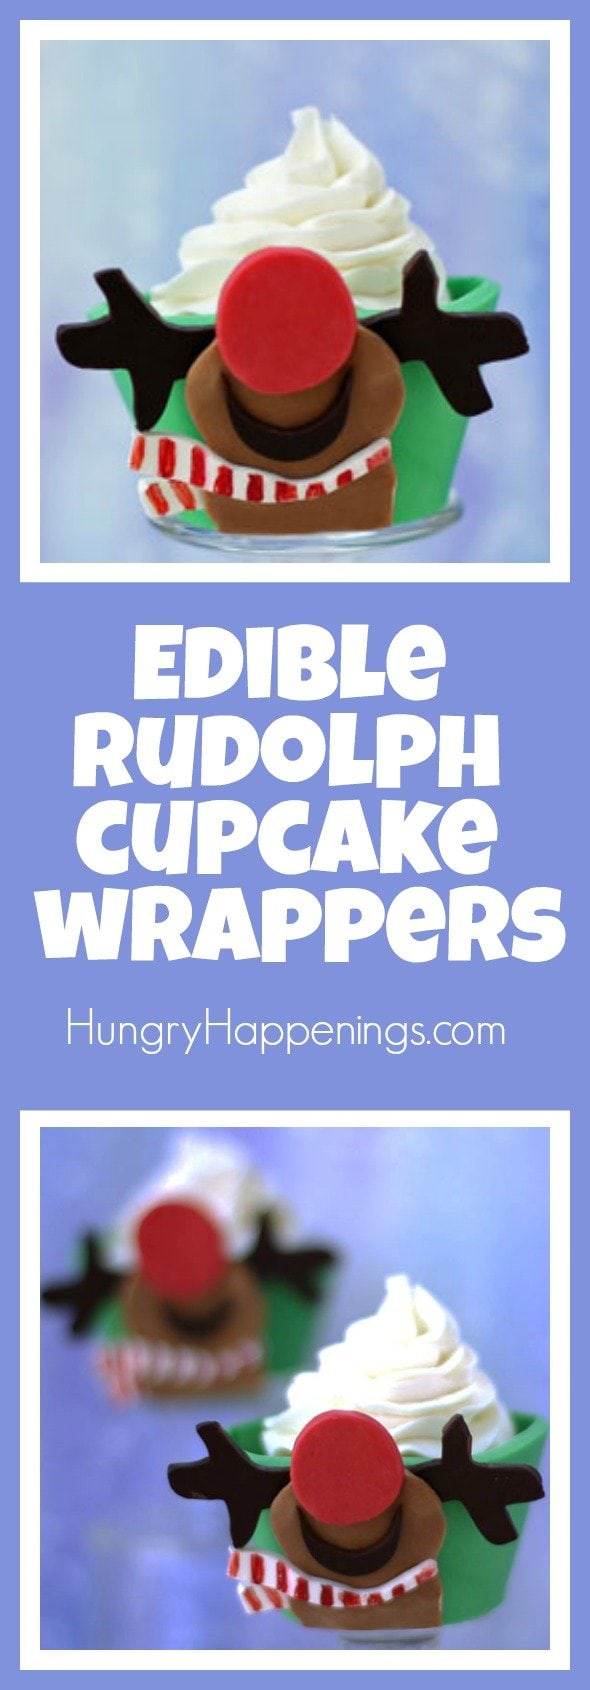 I'm always looking for cool ways to make cupcakes even more appealing than they already are. An Edible Rudolph Cupcake Wrappers will make your treat better looking and tasting.